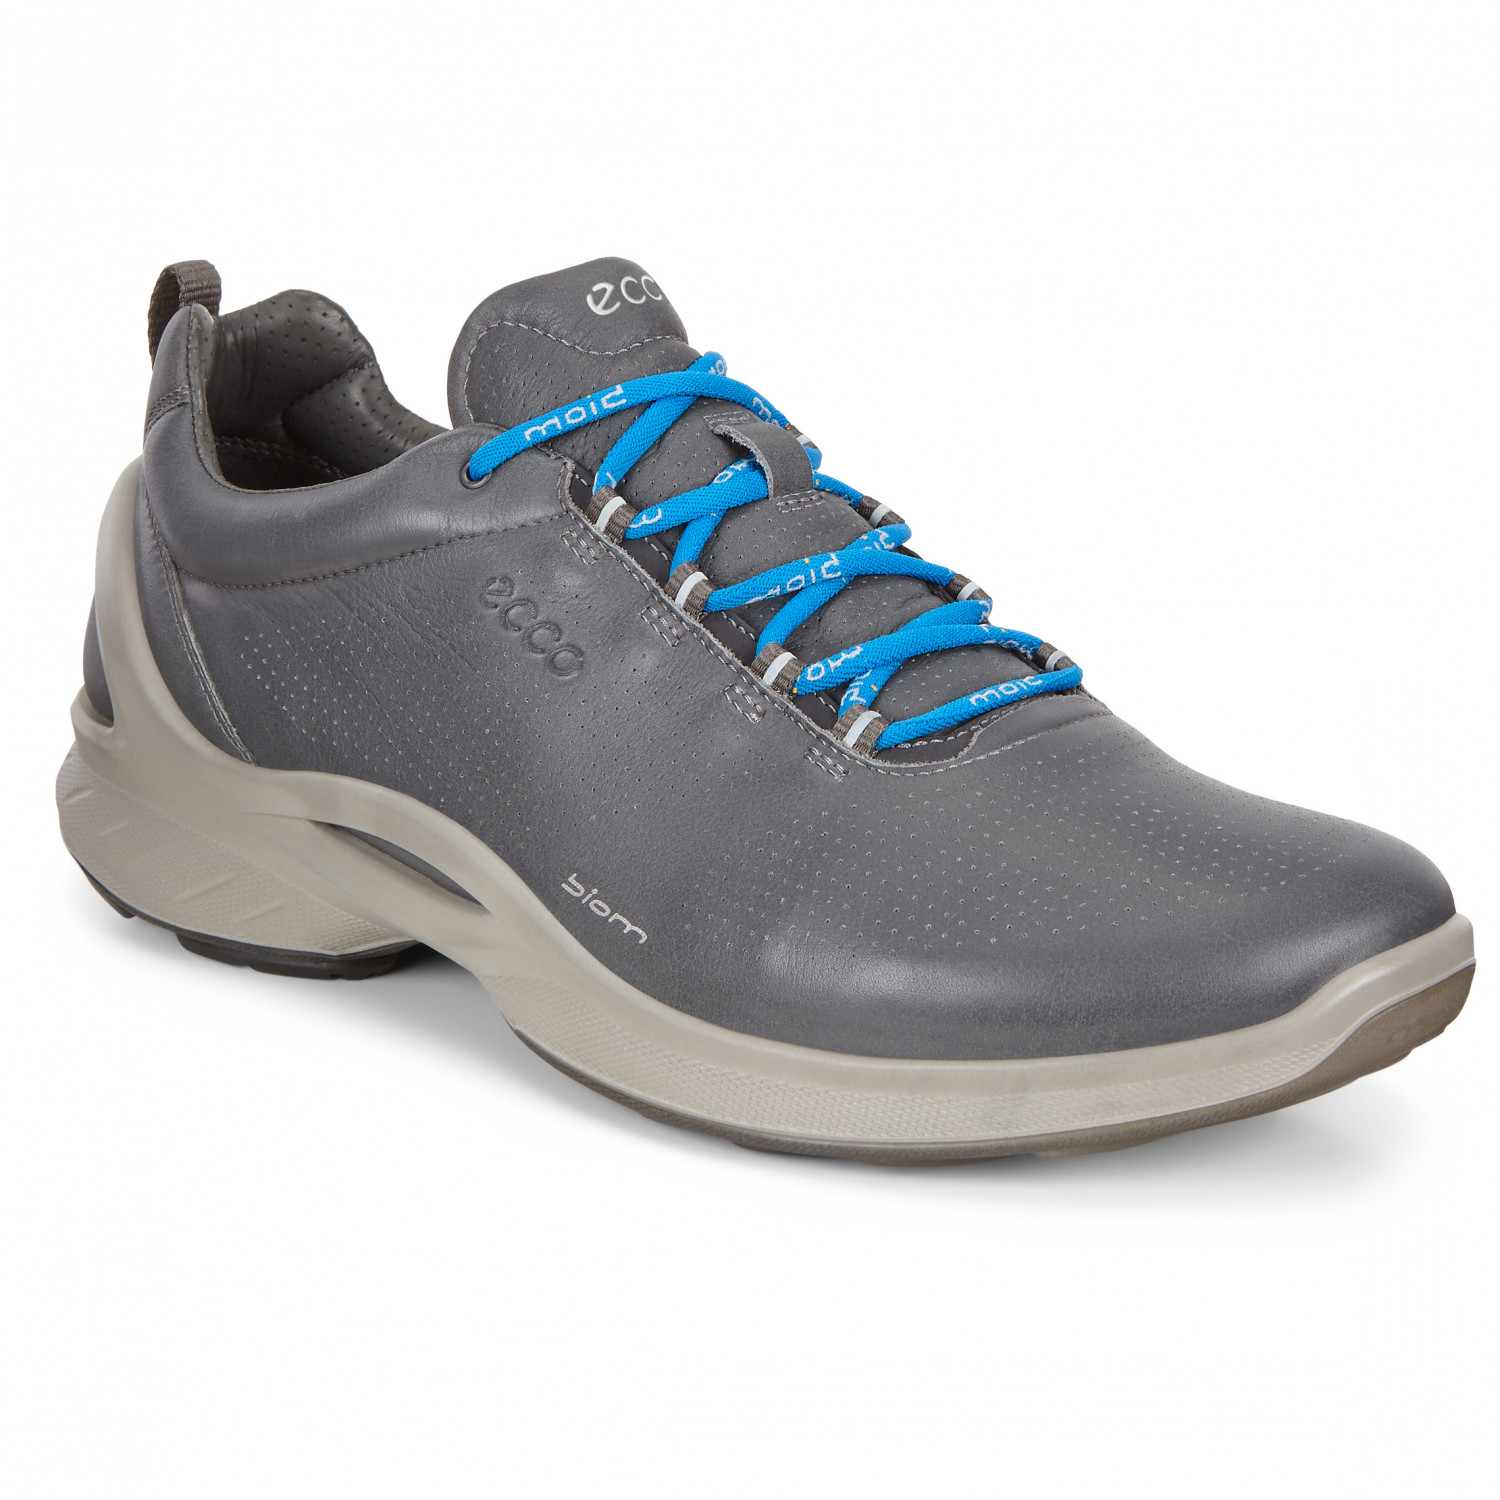 Dark Leather Biom Ecco Yak Shadow43eu Fjuel Multisportsko